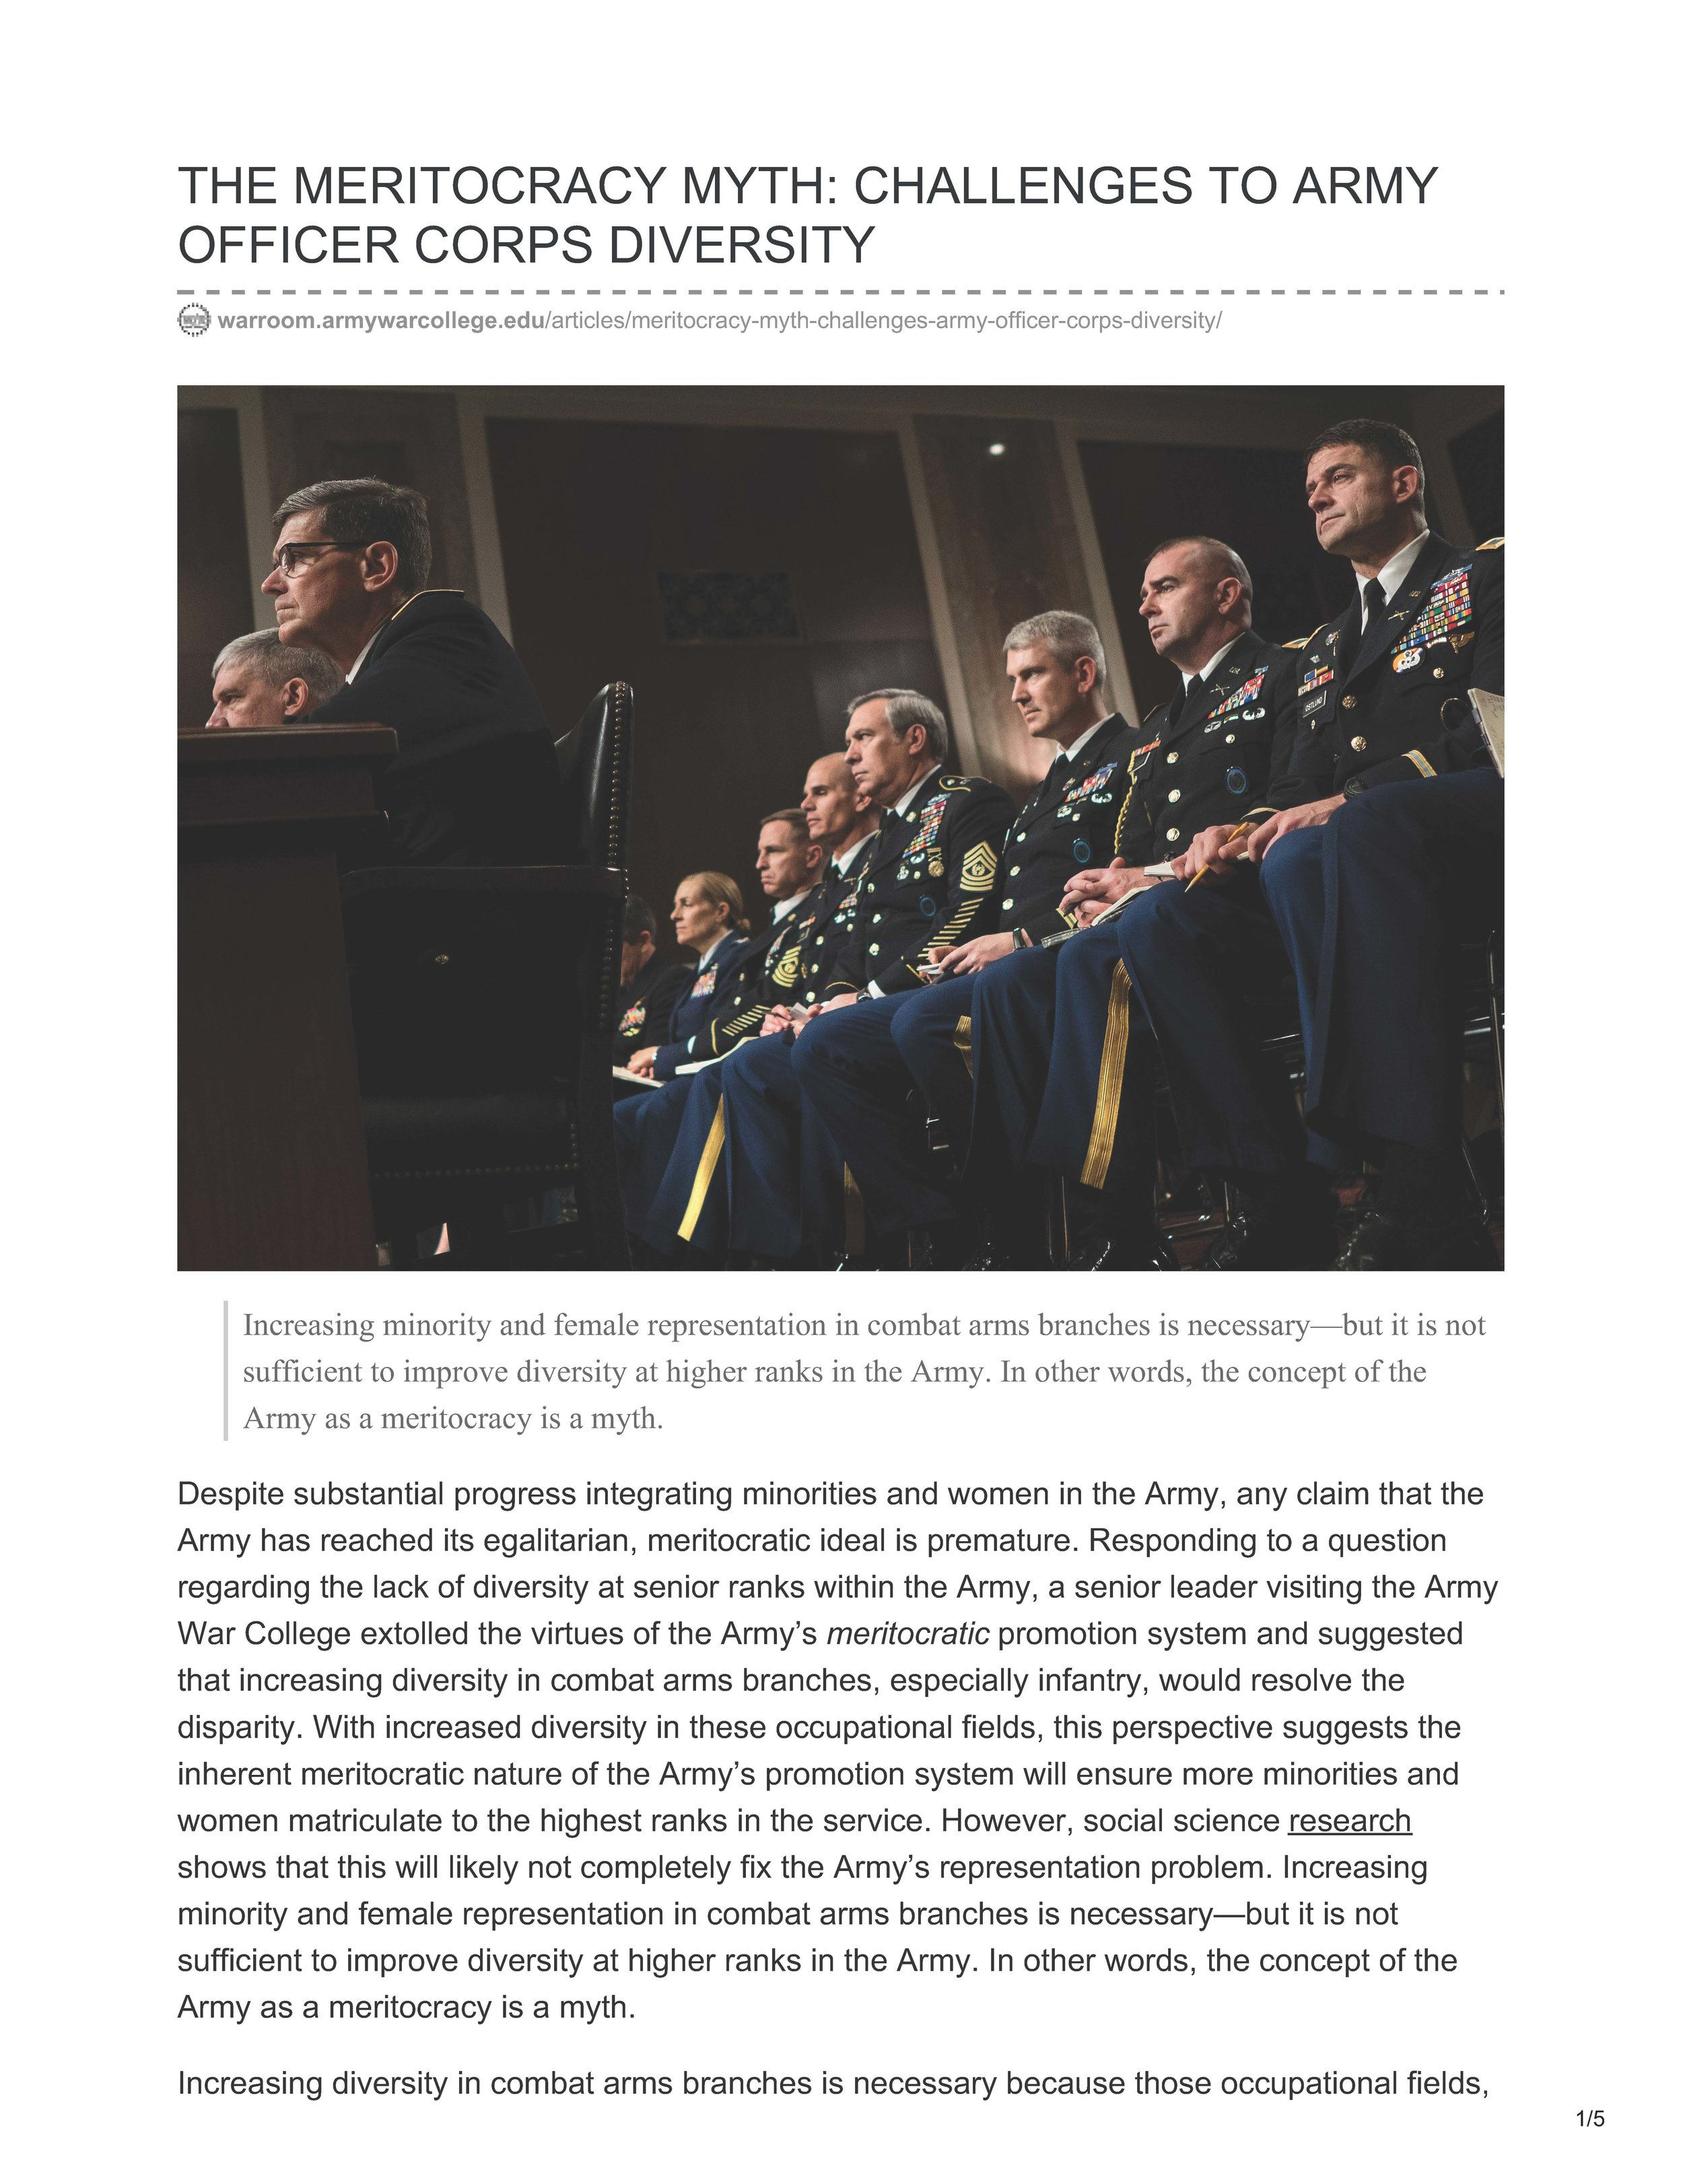 By Colonel Michael Hosie, U.S. Army, and Ms. Kaytlynn Griswold, Penn State University. - Another senior officer speaking truth to power. This recent (July 2017) article states barriers to promotion for minority officers still persist in the modern Army. These barriers are universal, and by extension apply to all branches of the military. The article concludes,